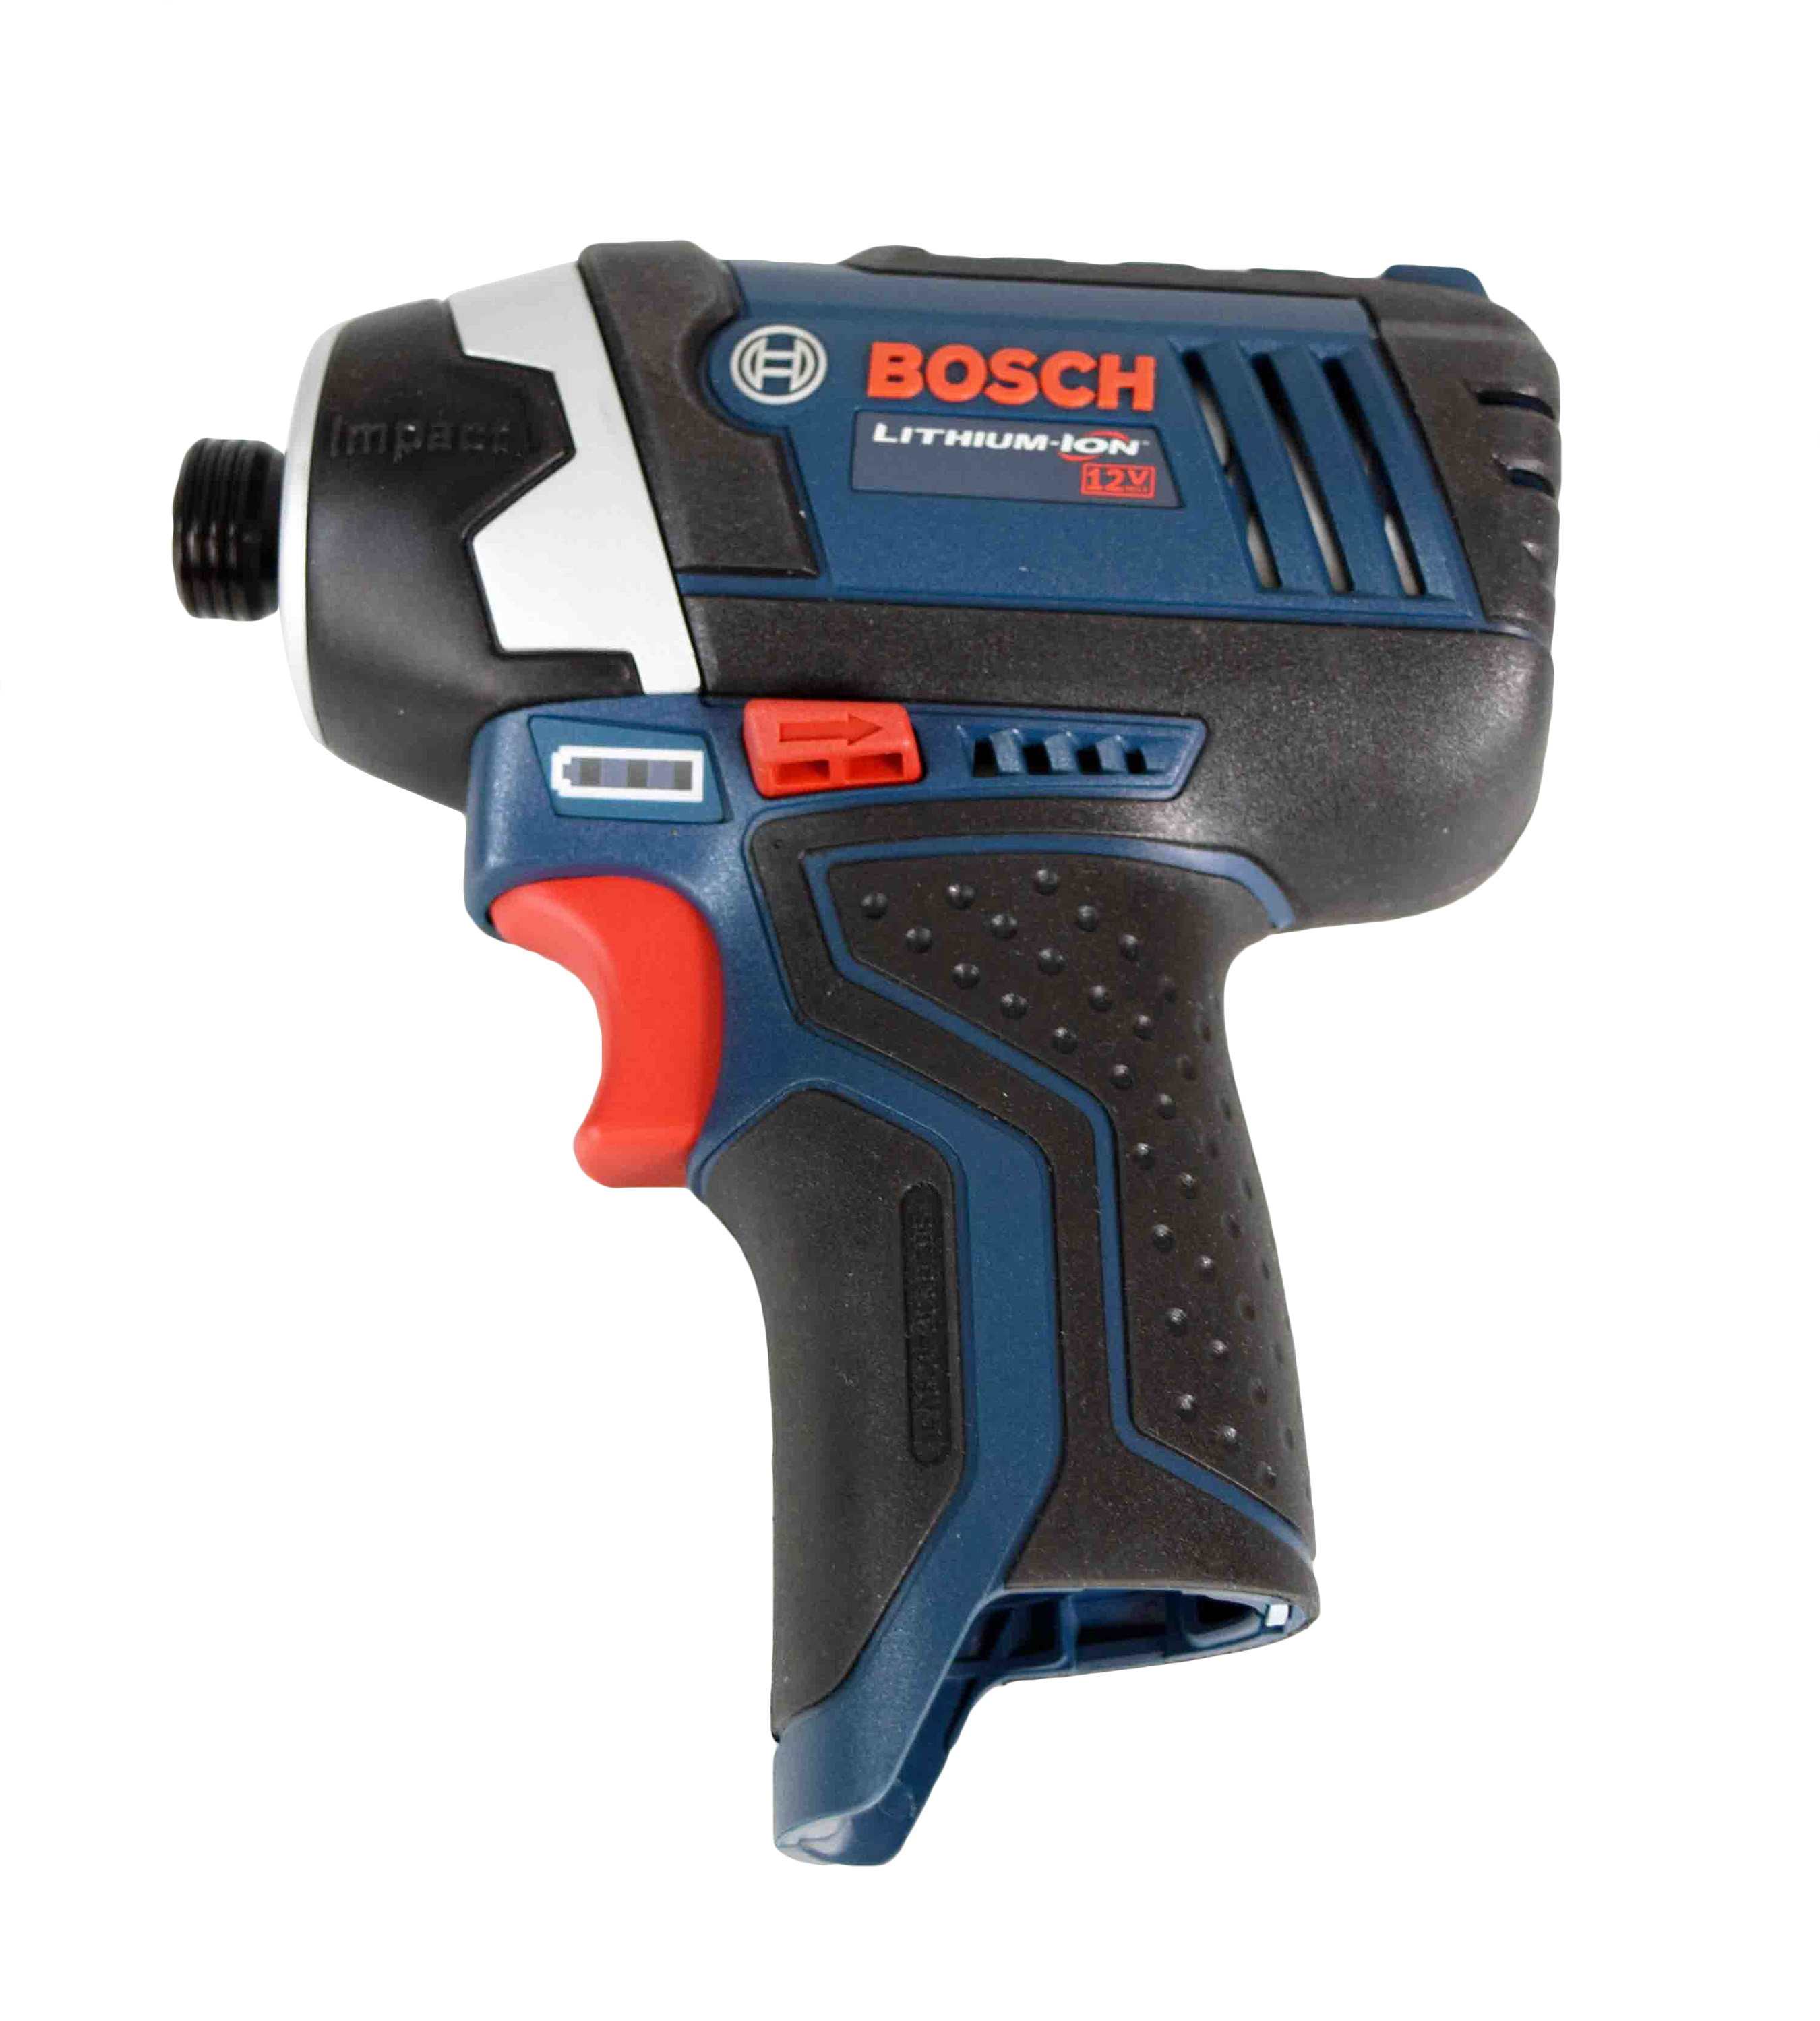 Bosch-PS41-12V-Lithium-Ion-1-4-Cordless-Impact-Drill-image-4